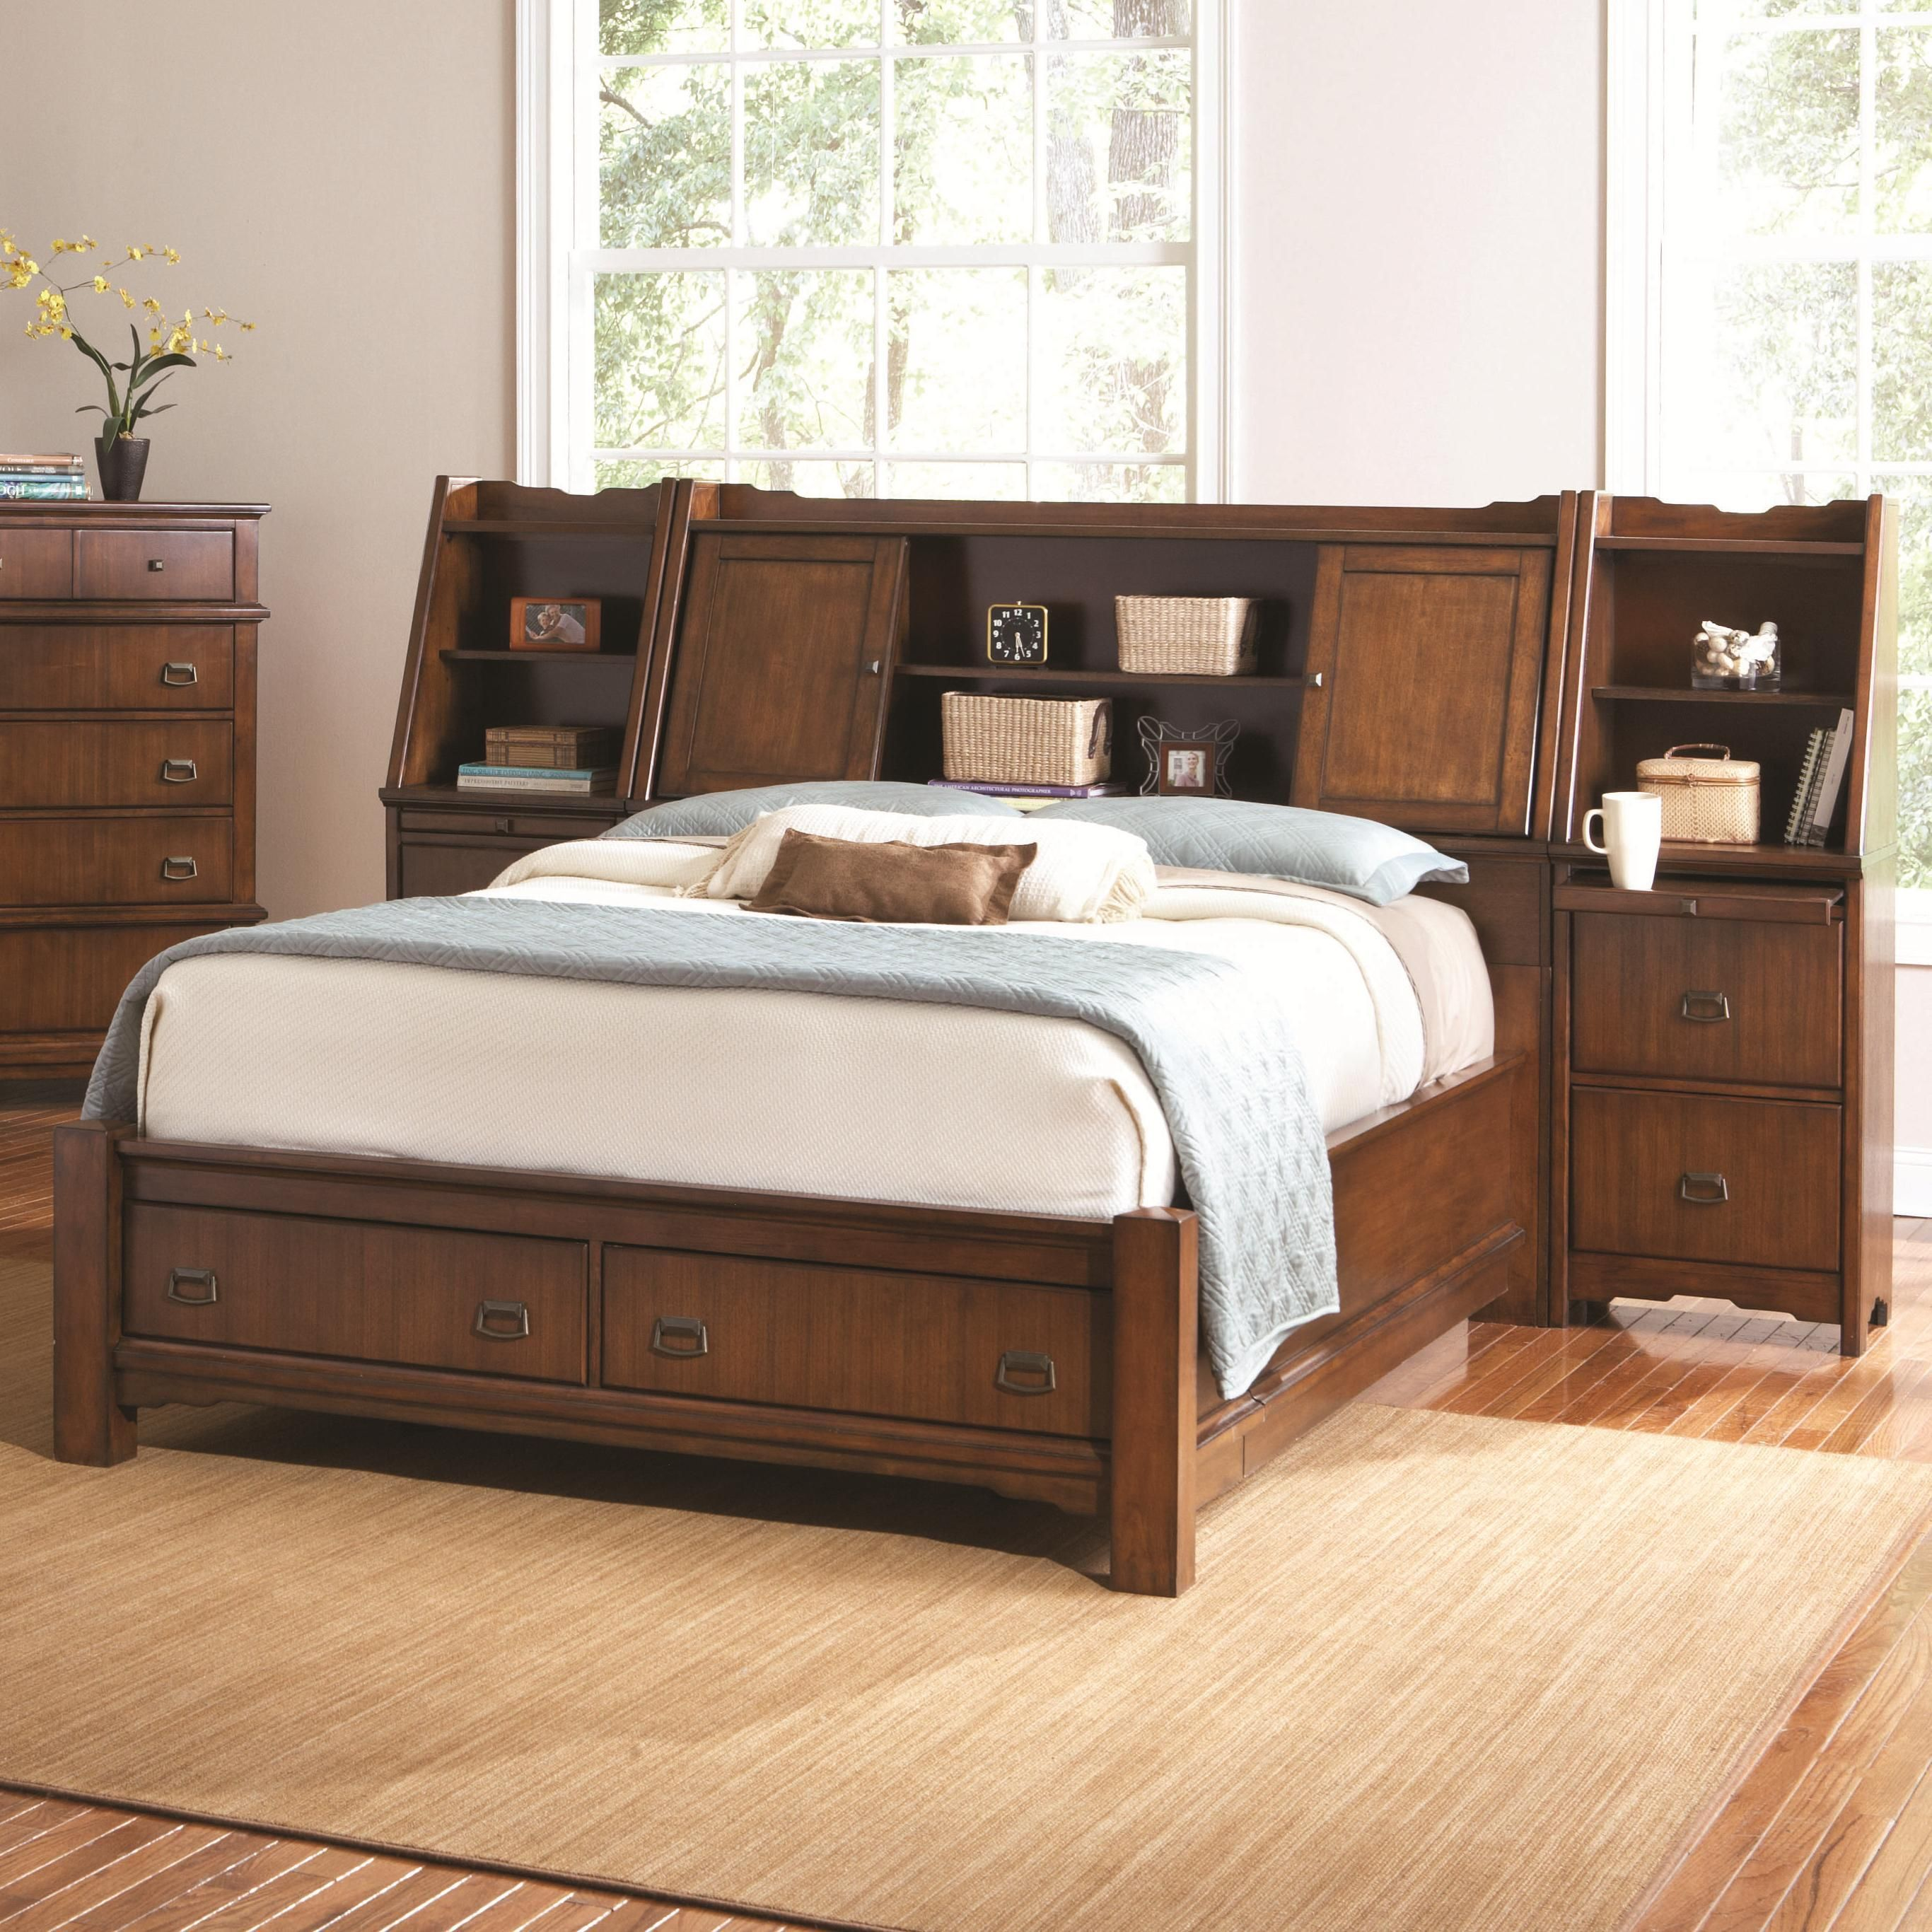 Grendel Queen Bookcase Bed With Footboard Storage And Hutch